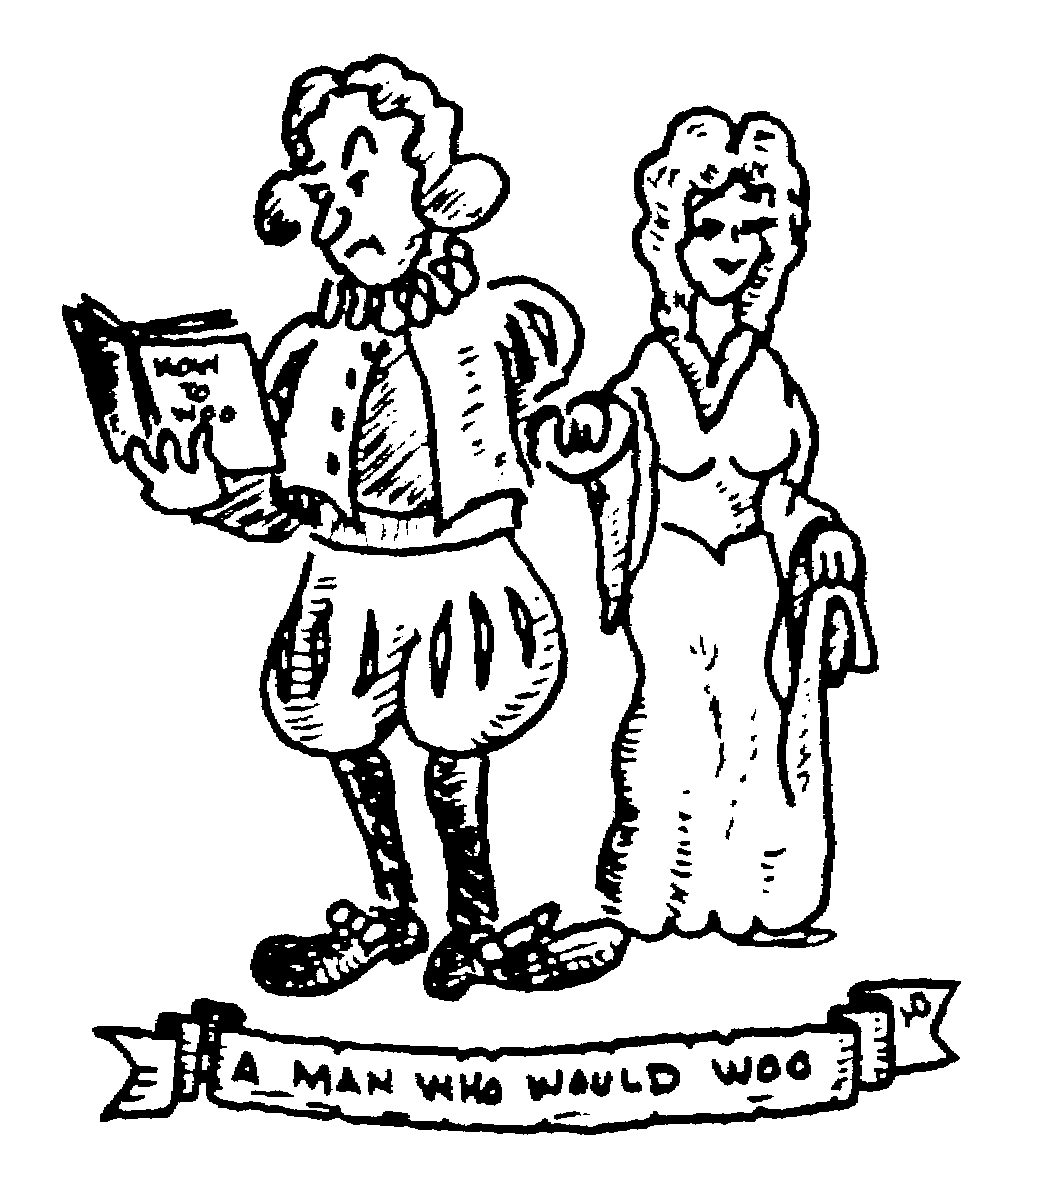 Sketch of A man who would woo